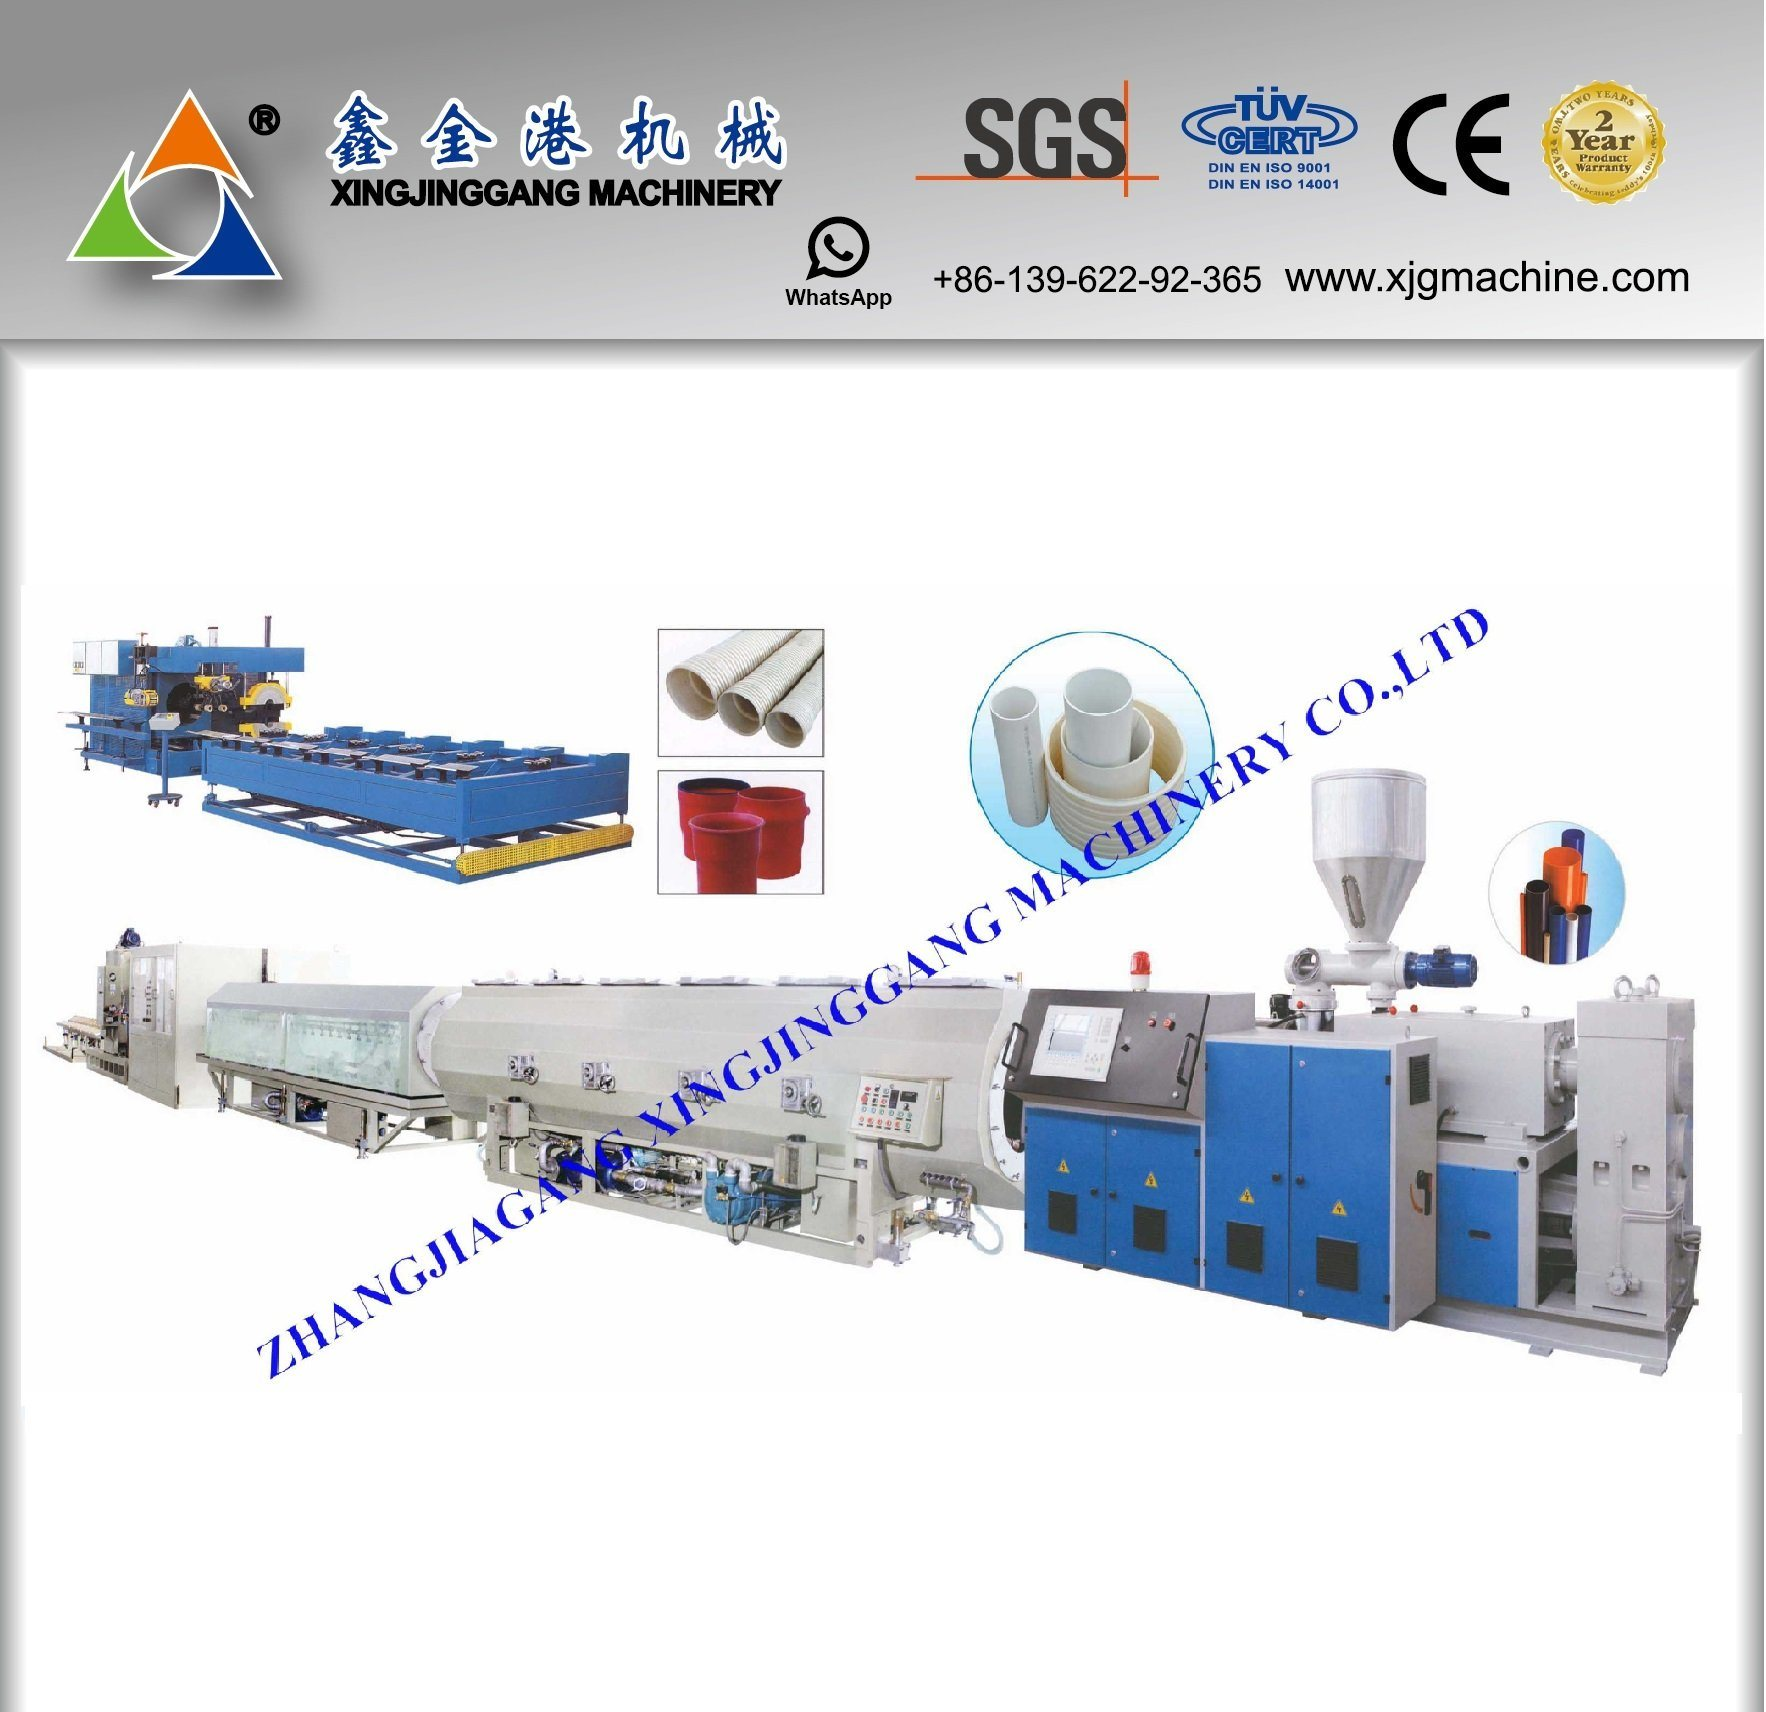 hight resolution of china pvc pipe extrusion line cpvc pipe production line pvc pipe production line hdpe pipe production line ppr pipe production line ppr pipe extrusion line